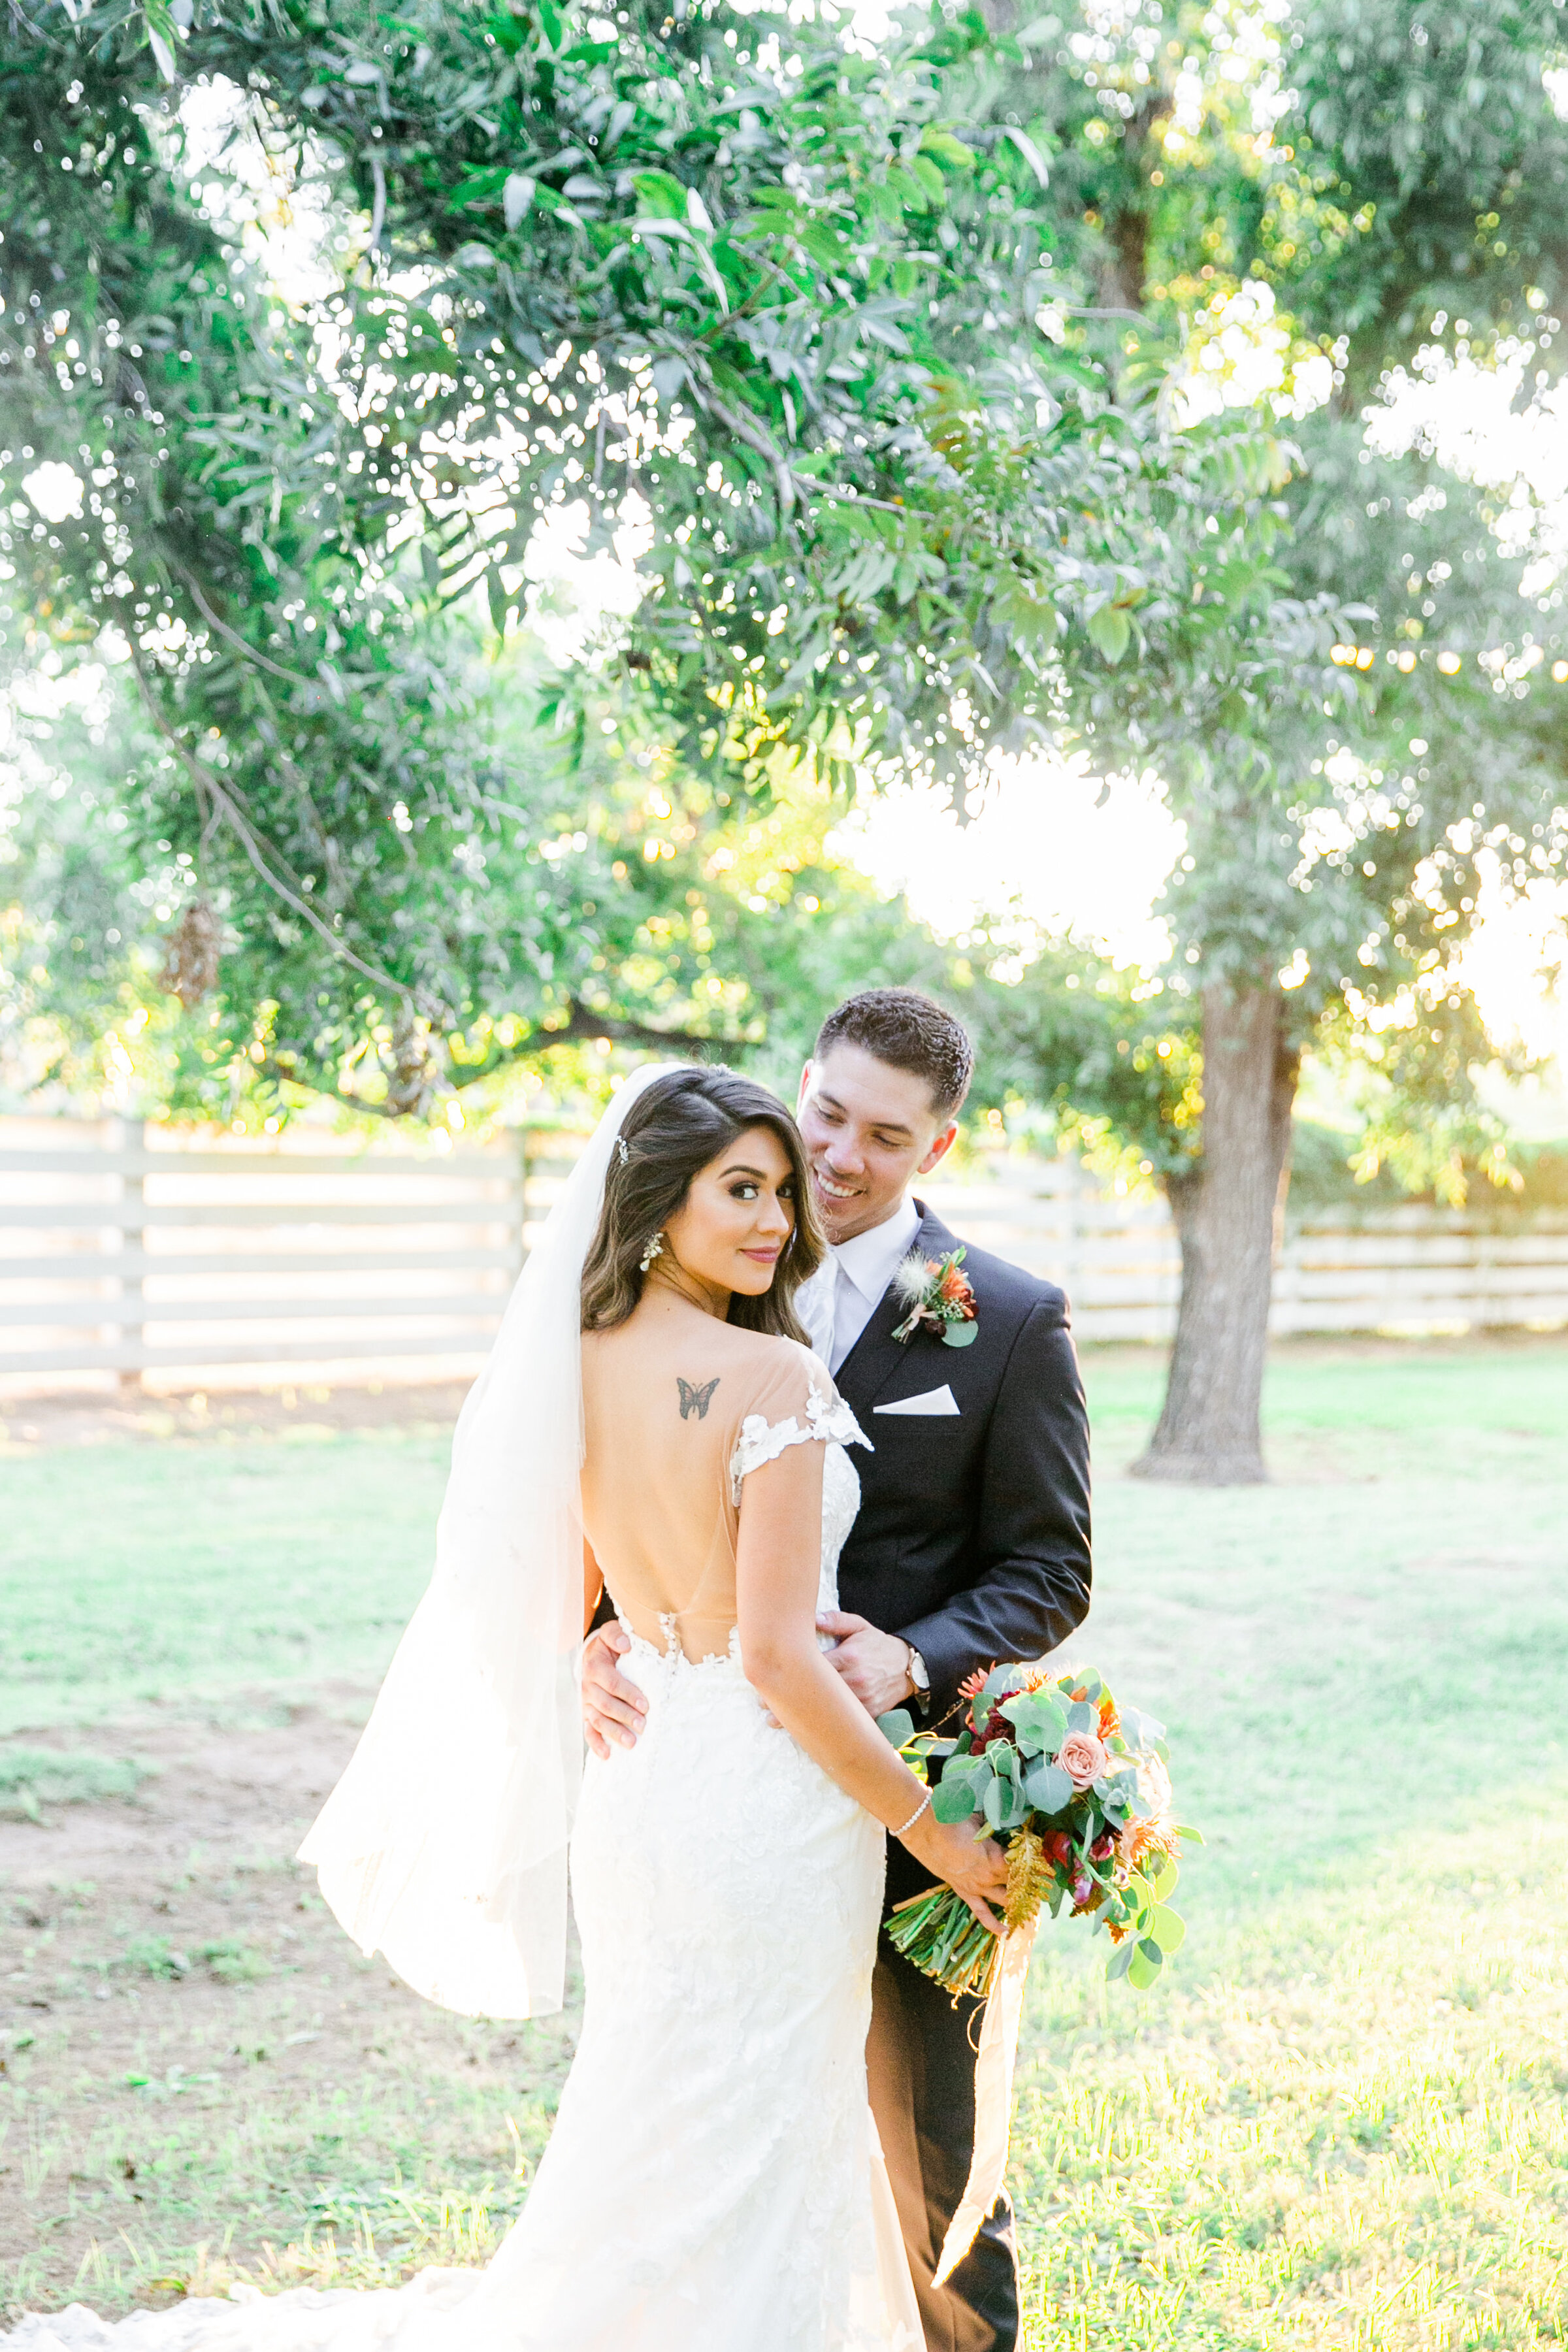 Karlie Colleen Photography - Phoenix Arizona - Farm At South Mountain Venue - Vanessa & Robert-562